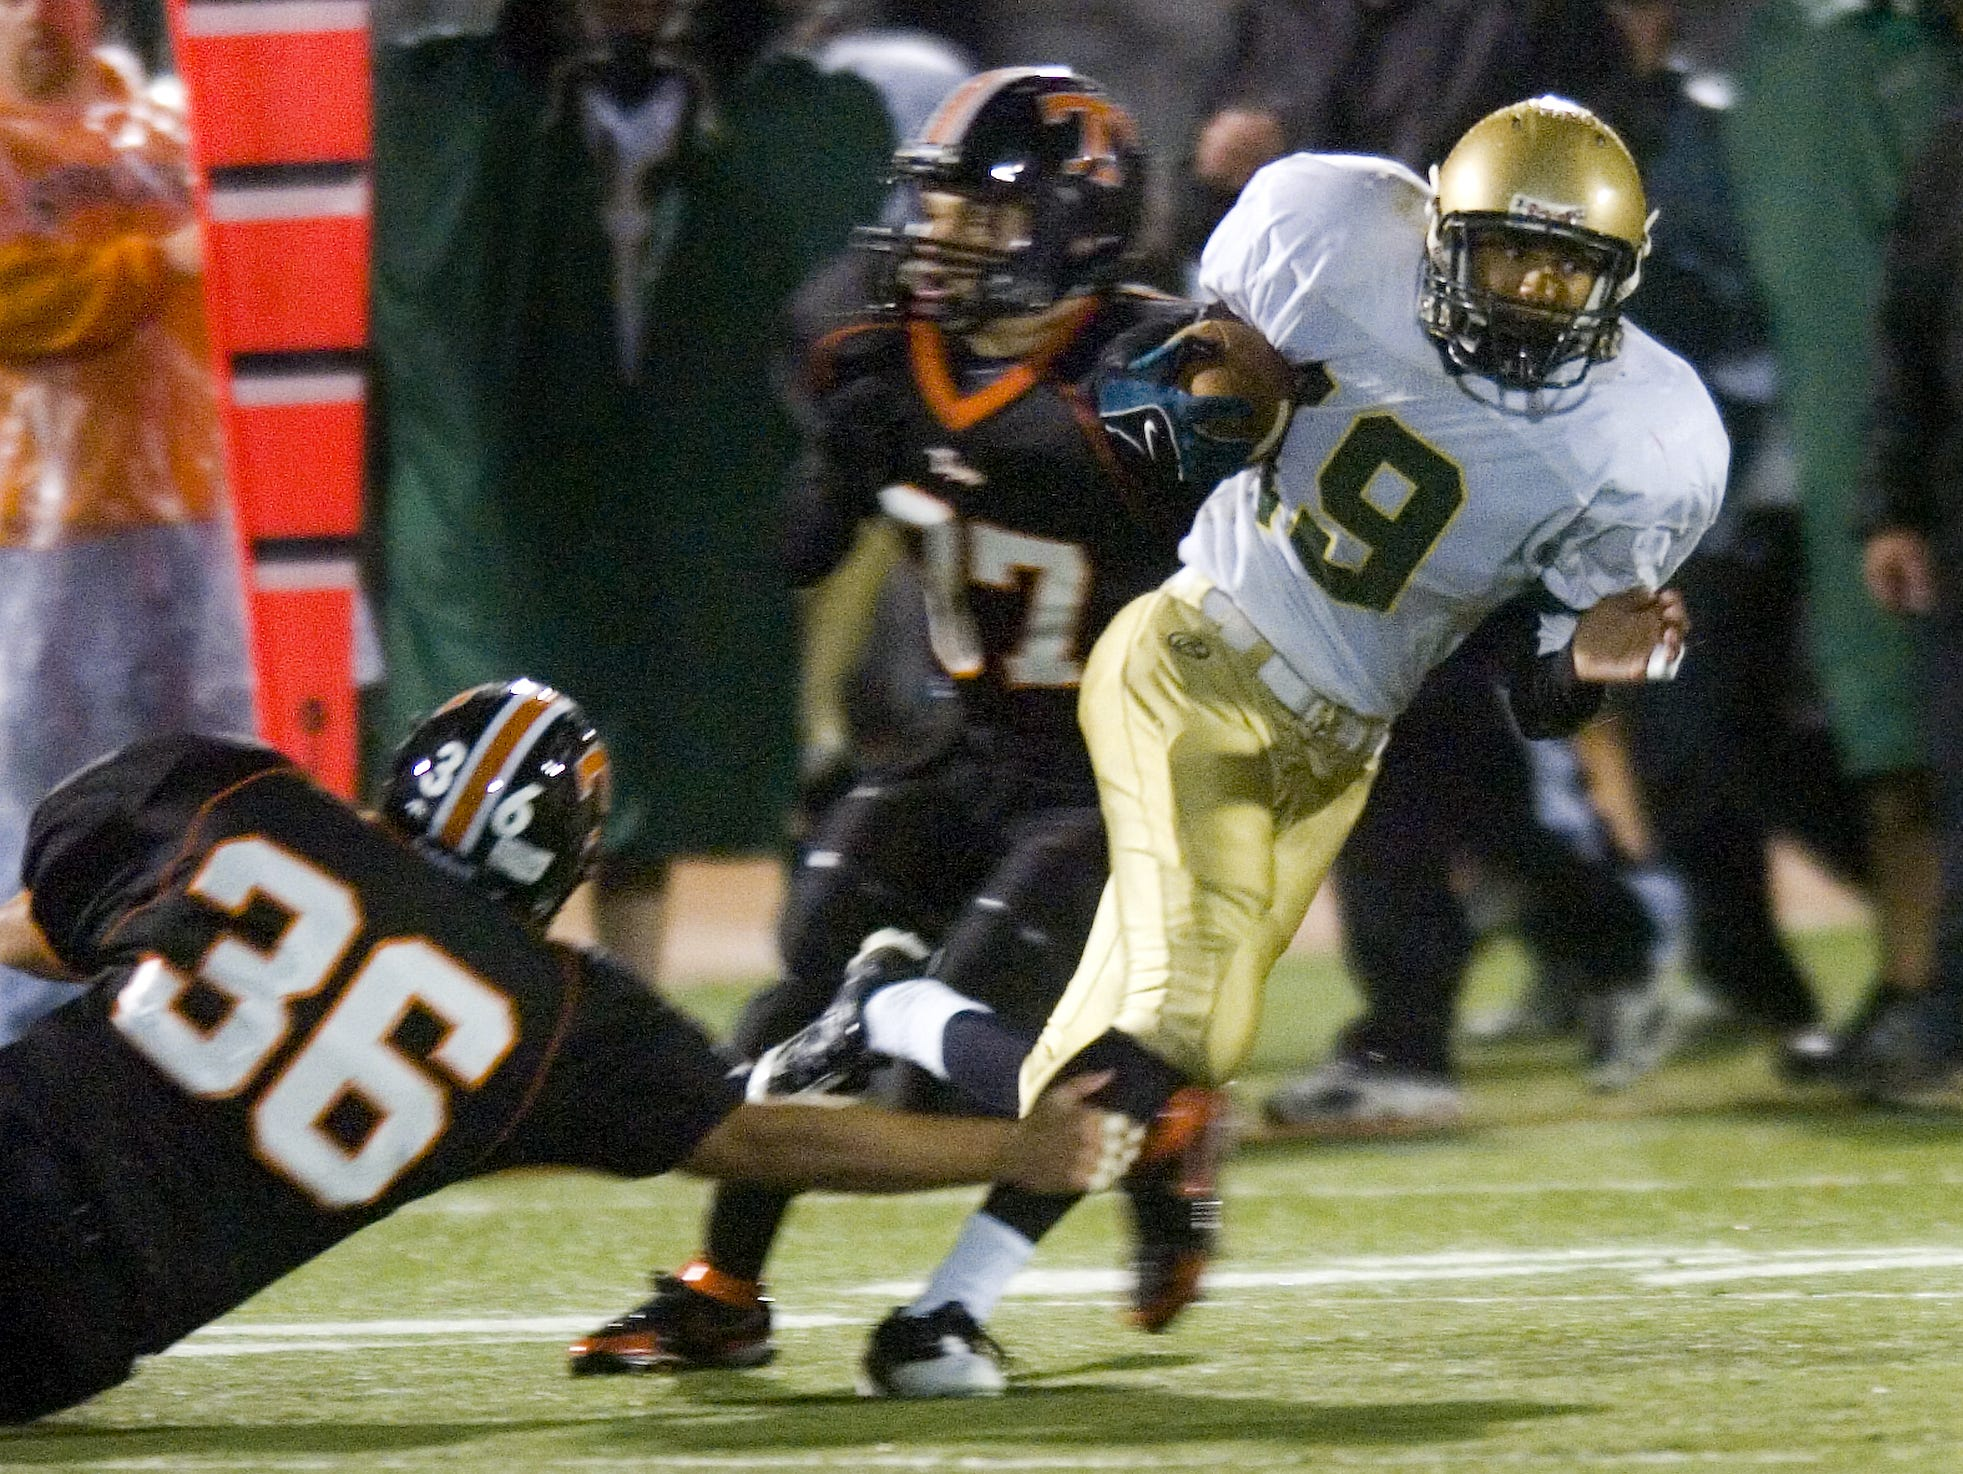 Union-Endicott's Chris Nichols tries for the grab as Vestal's Kameron Sowell carries the ball in the 1st half of a 2008 game at Union-Endicott Saturday.